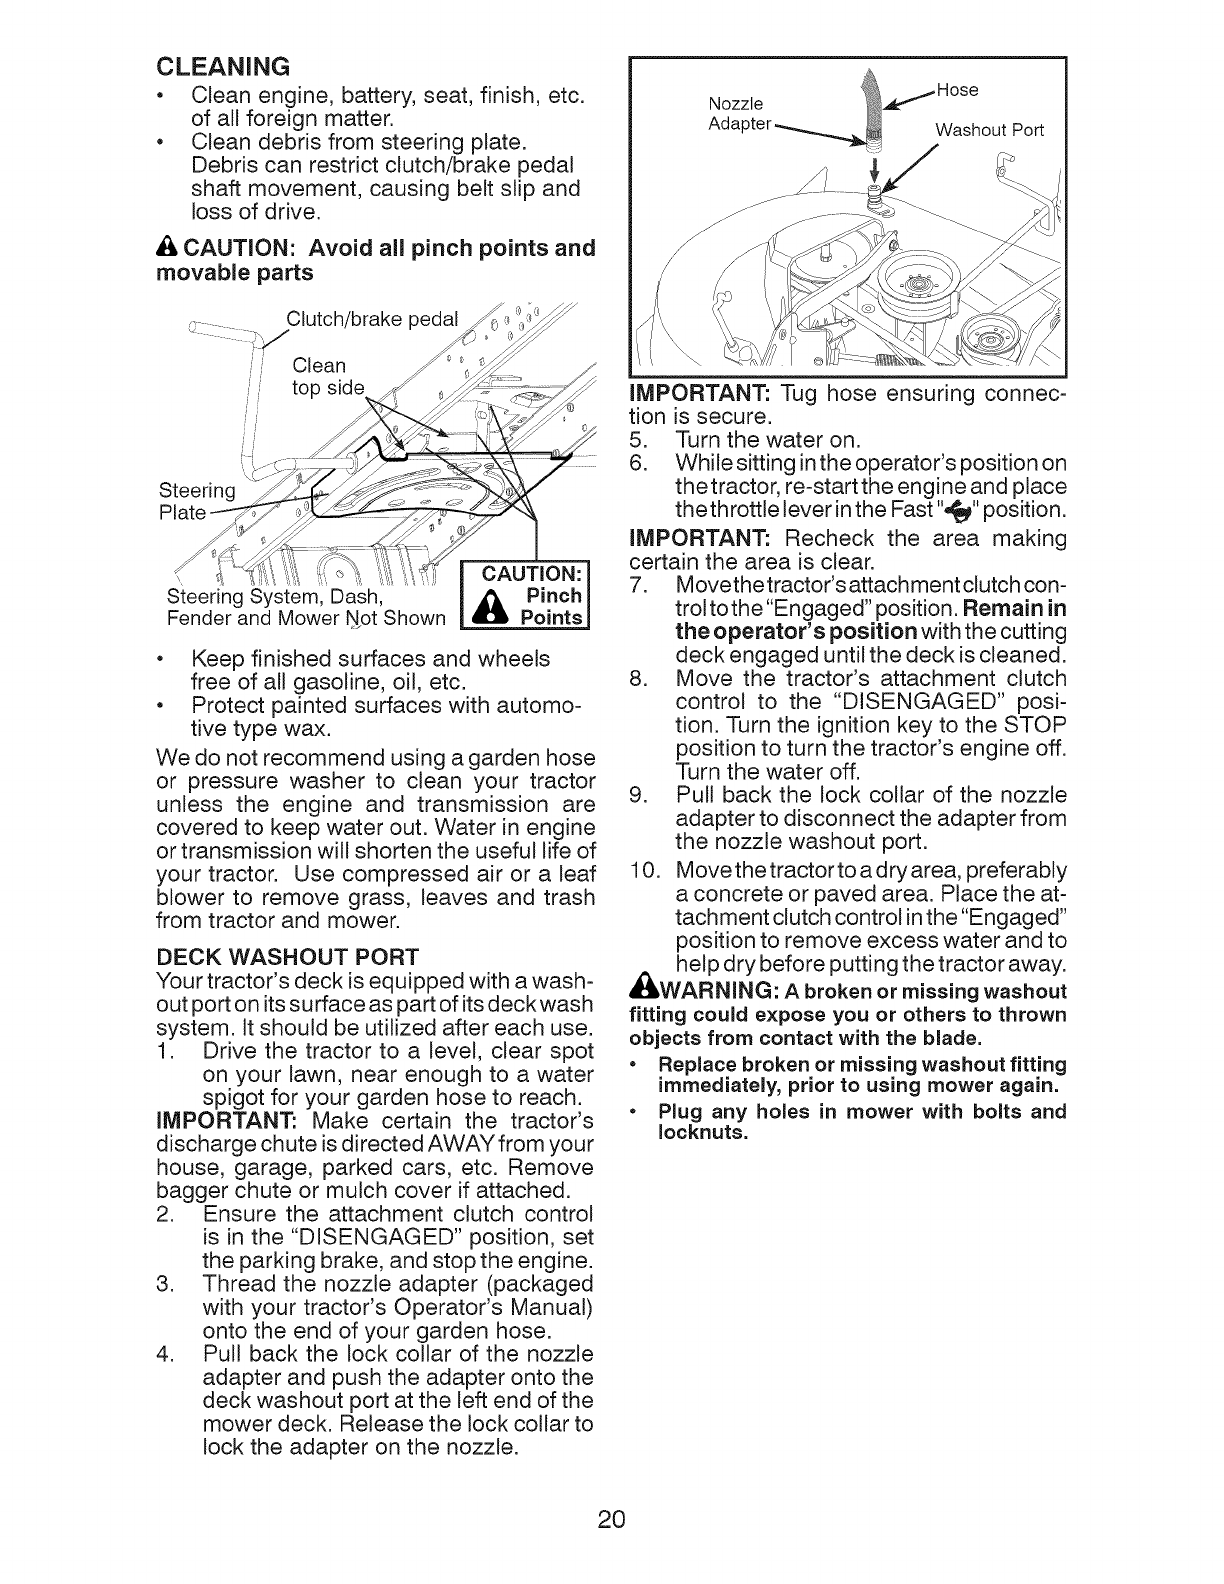 Page 20 of Craftsman Lawn Mower 917.289244 User Guide